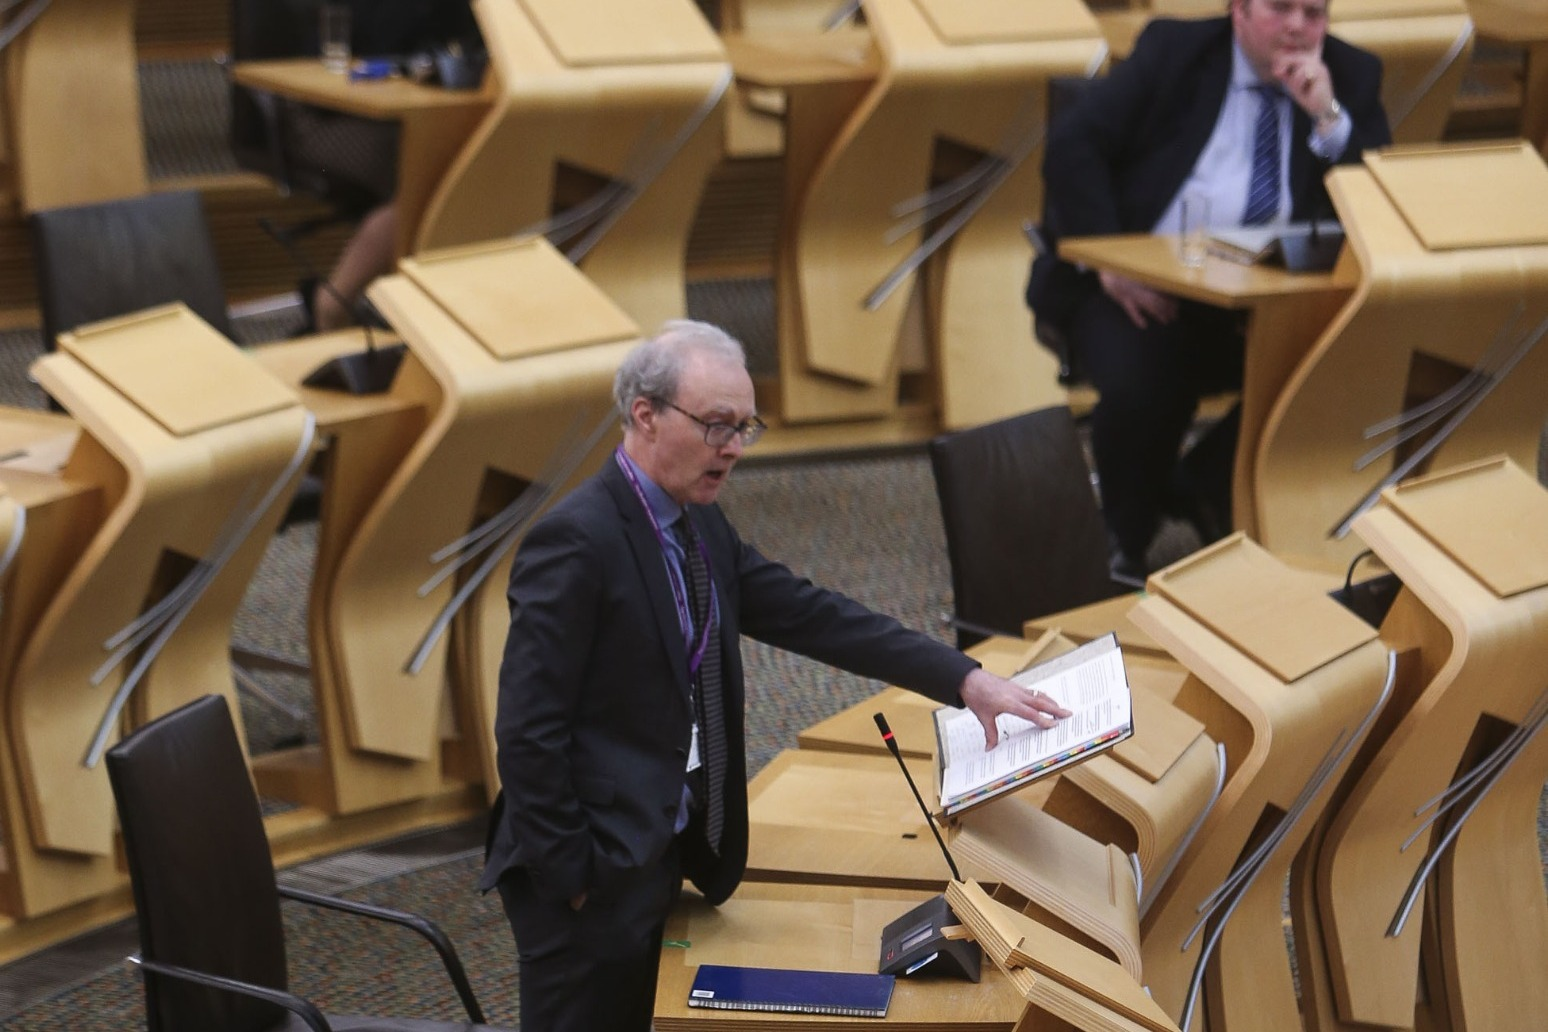 Salmond questions 'highly irregular' Crown Office intervention over evidence